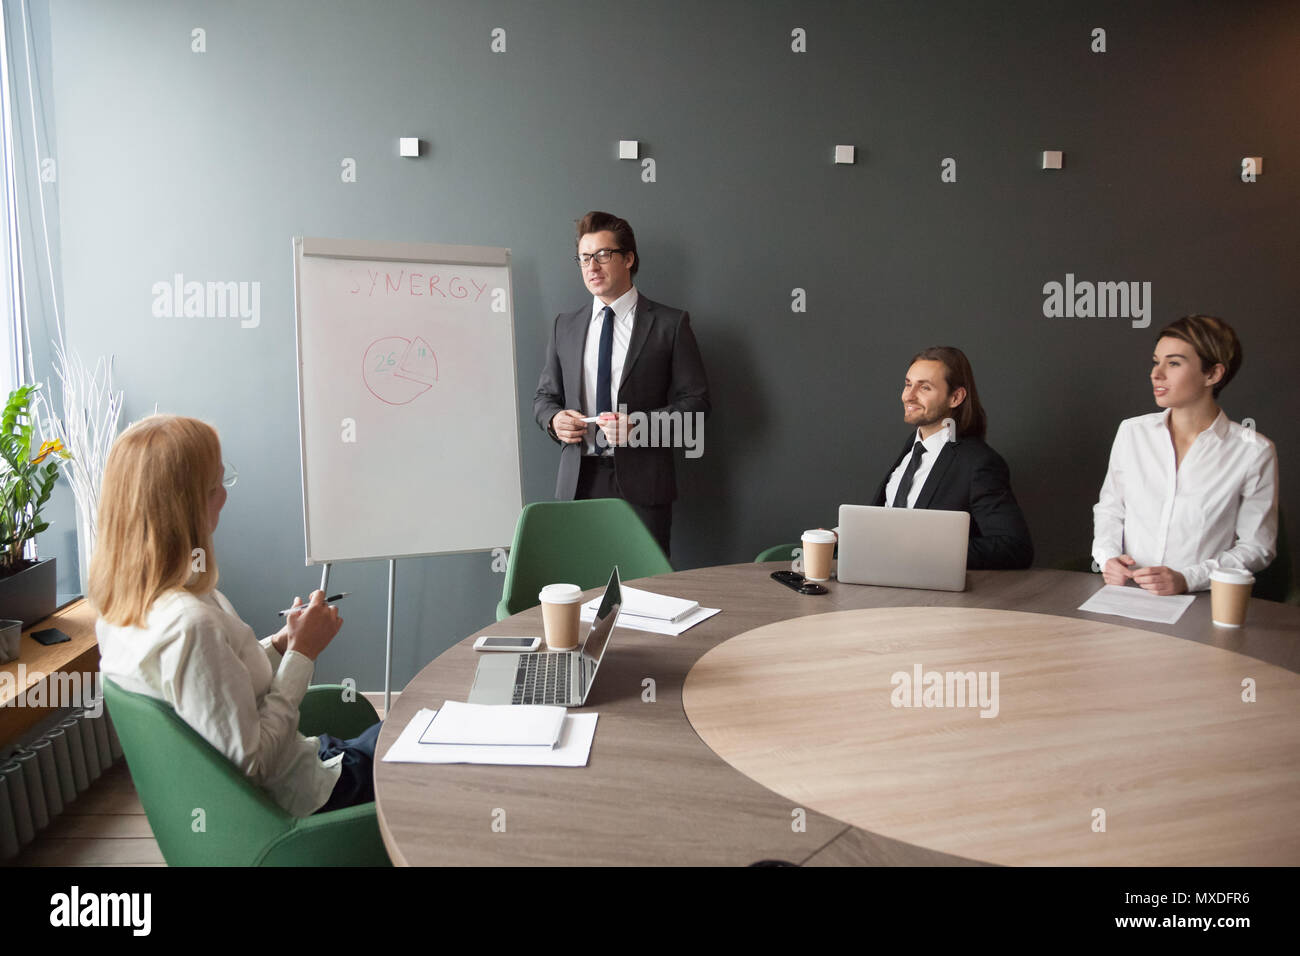 Serious male coach giving presentation on flipchart to business  - Stock Image